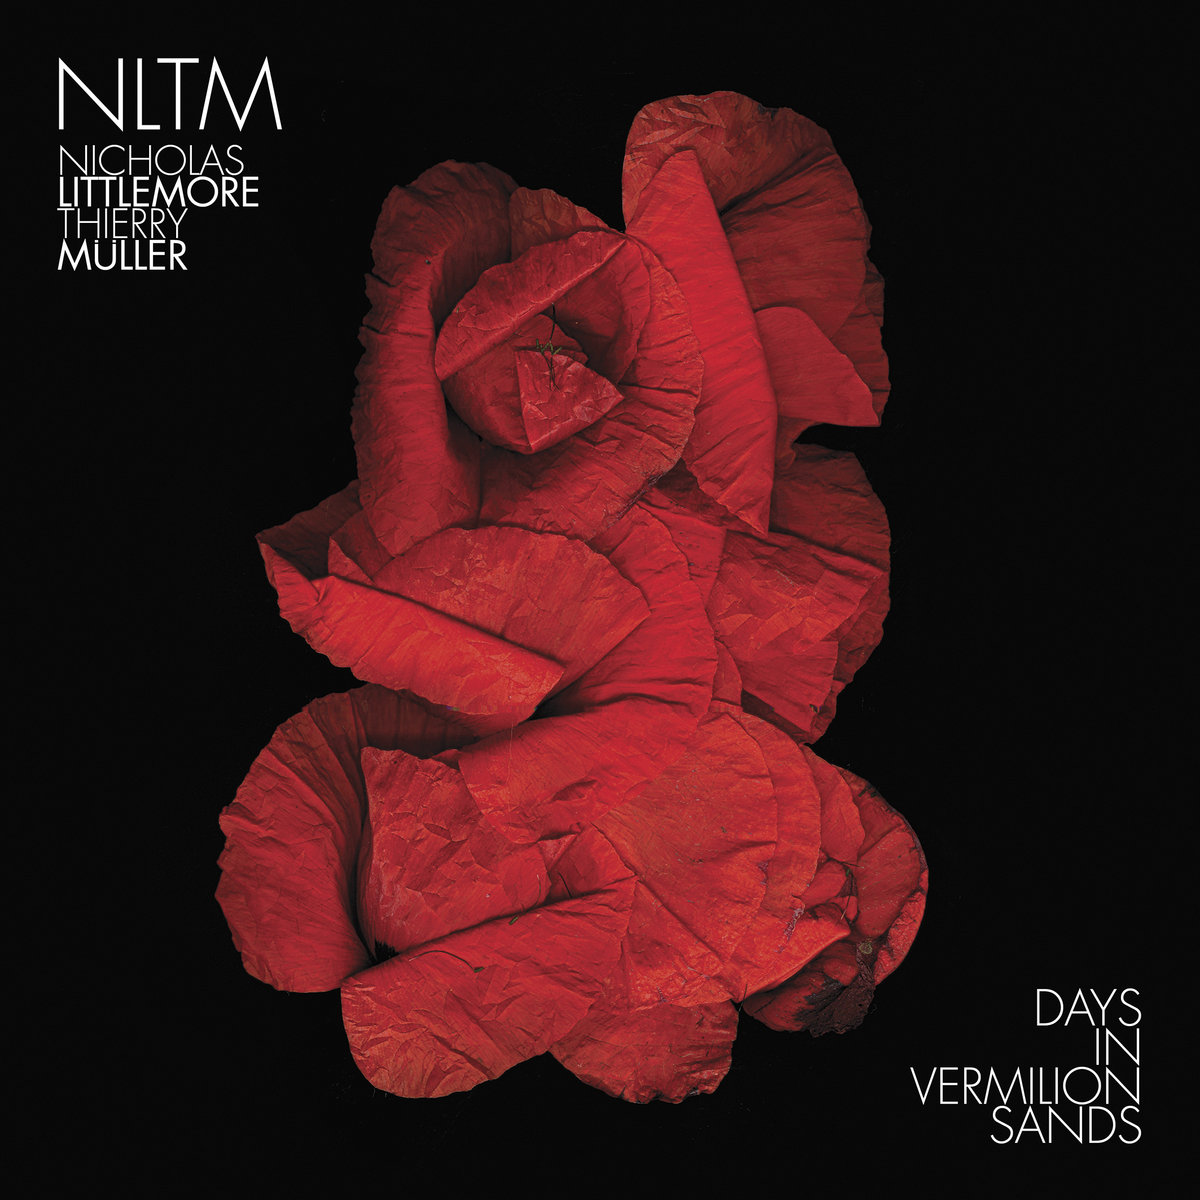 NLTM - Nick Littlemore / Thierry Müller — Days in Vermilion Sands